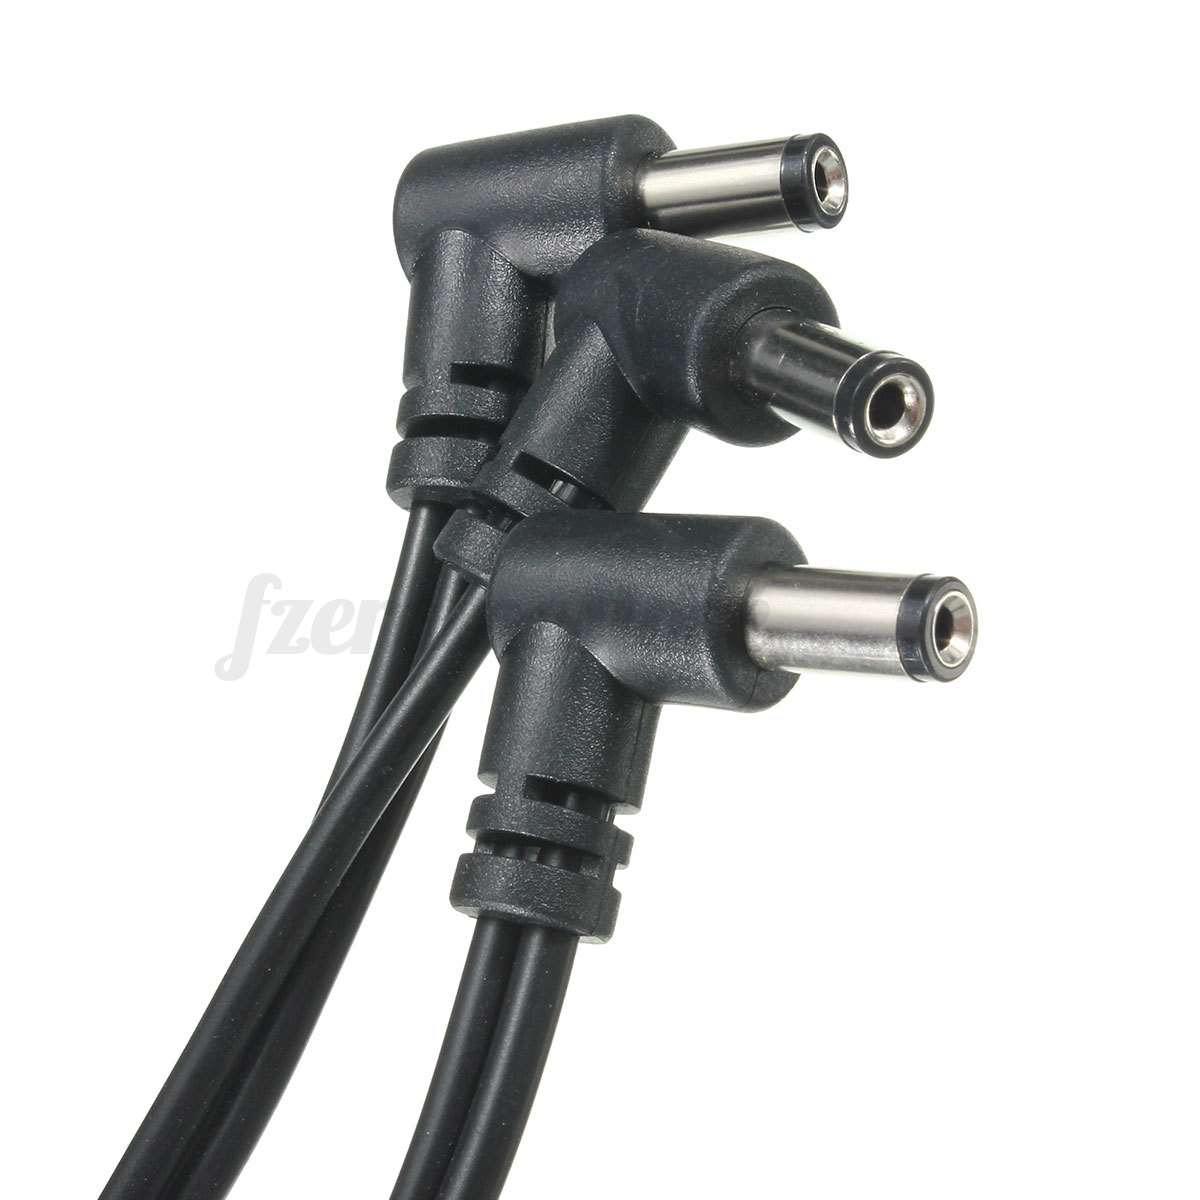 3 way 9v guitar effect pedal daisy chain power supply splitter adapter cable new. Black Bedroom Furniture Sets. Home Design Ideas